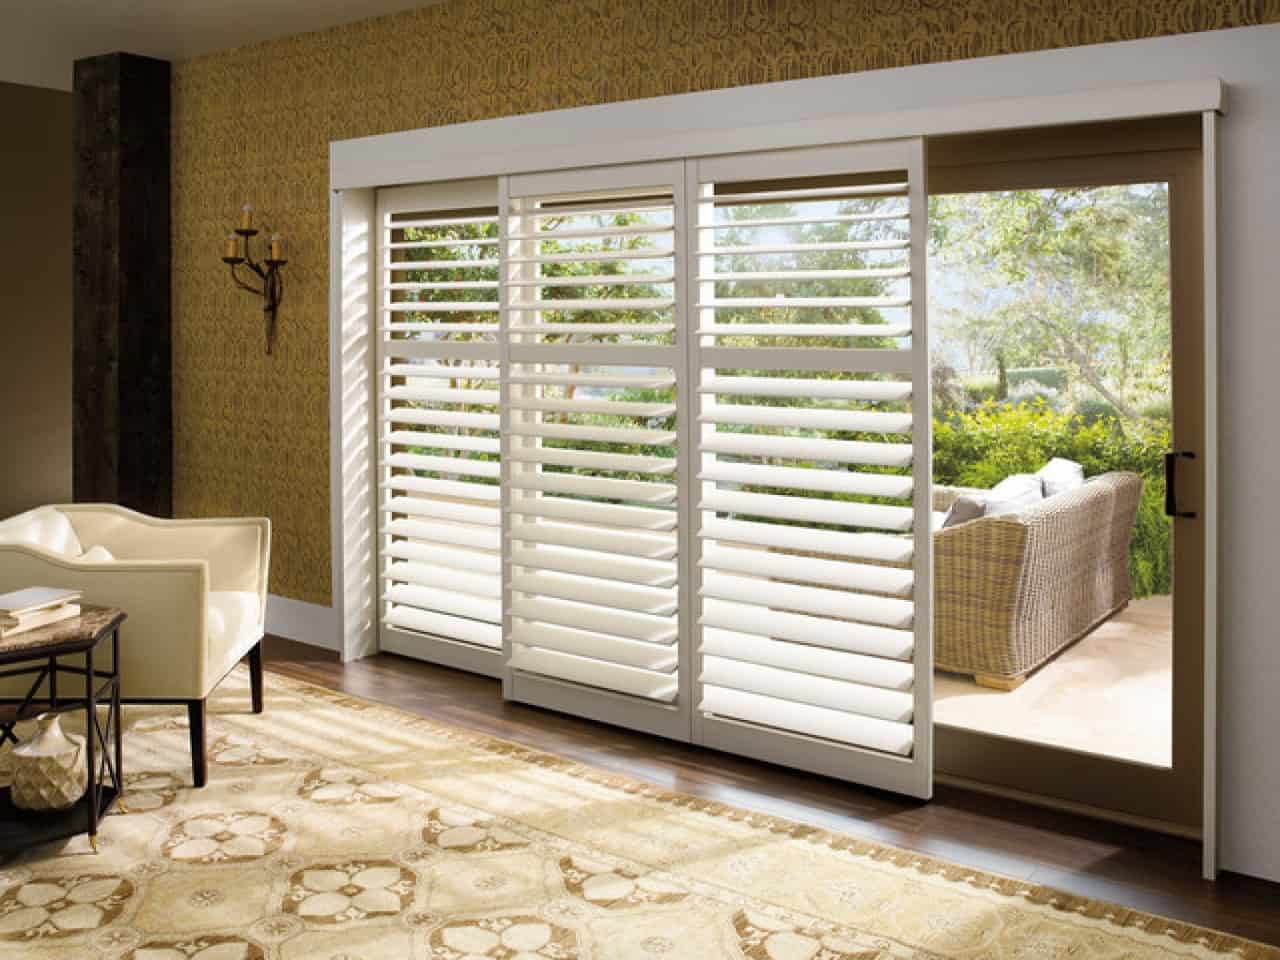 Plantation shutters for sliding glass patio doors